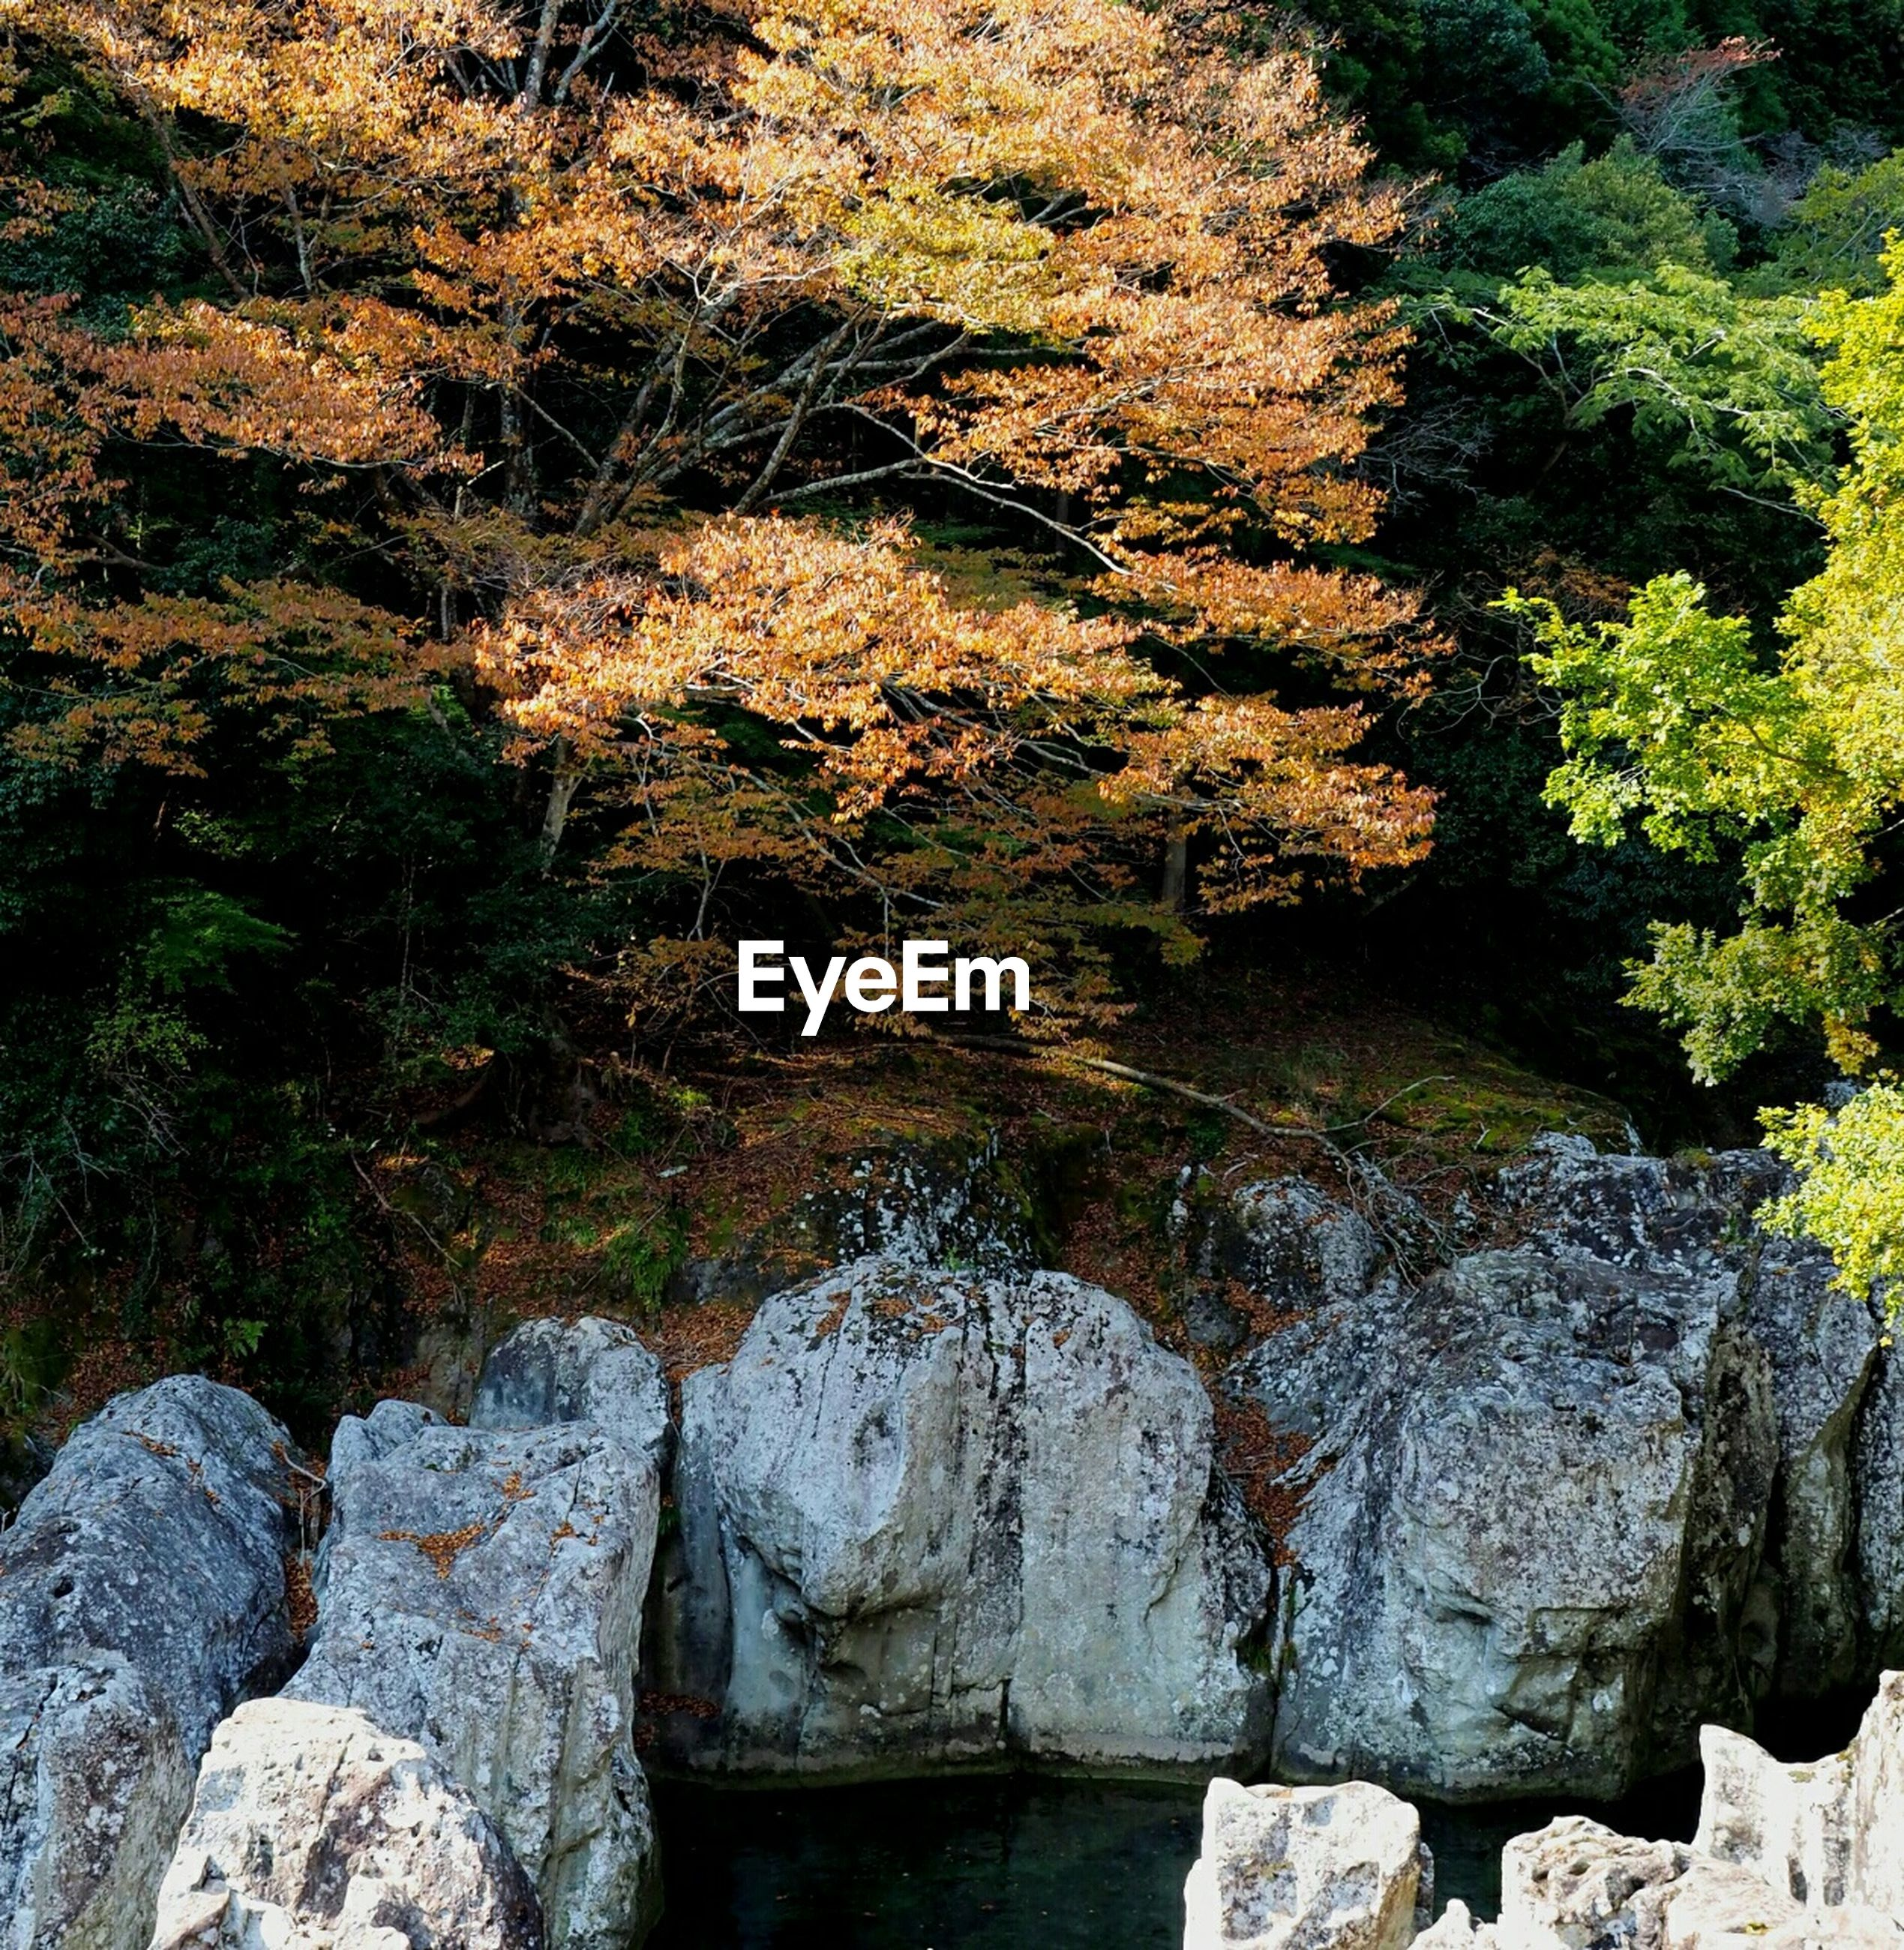 water, tree, tranquility, nature, rock - object, growth, tranquil scene, beauty in nature, plant, scenics, high angle view, reflection, river, day, outdoors, stream, forest, stone - object, green color, no people